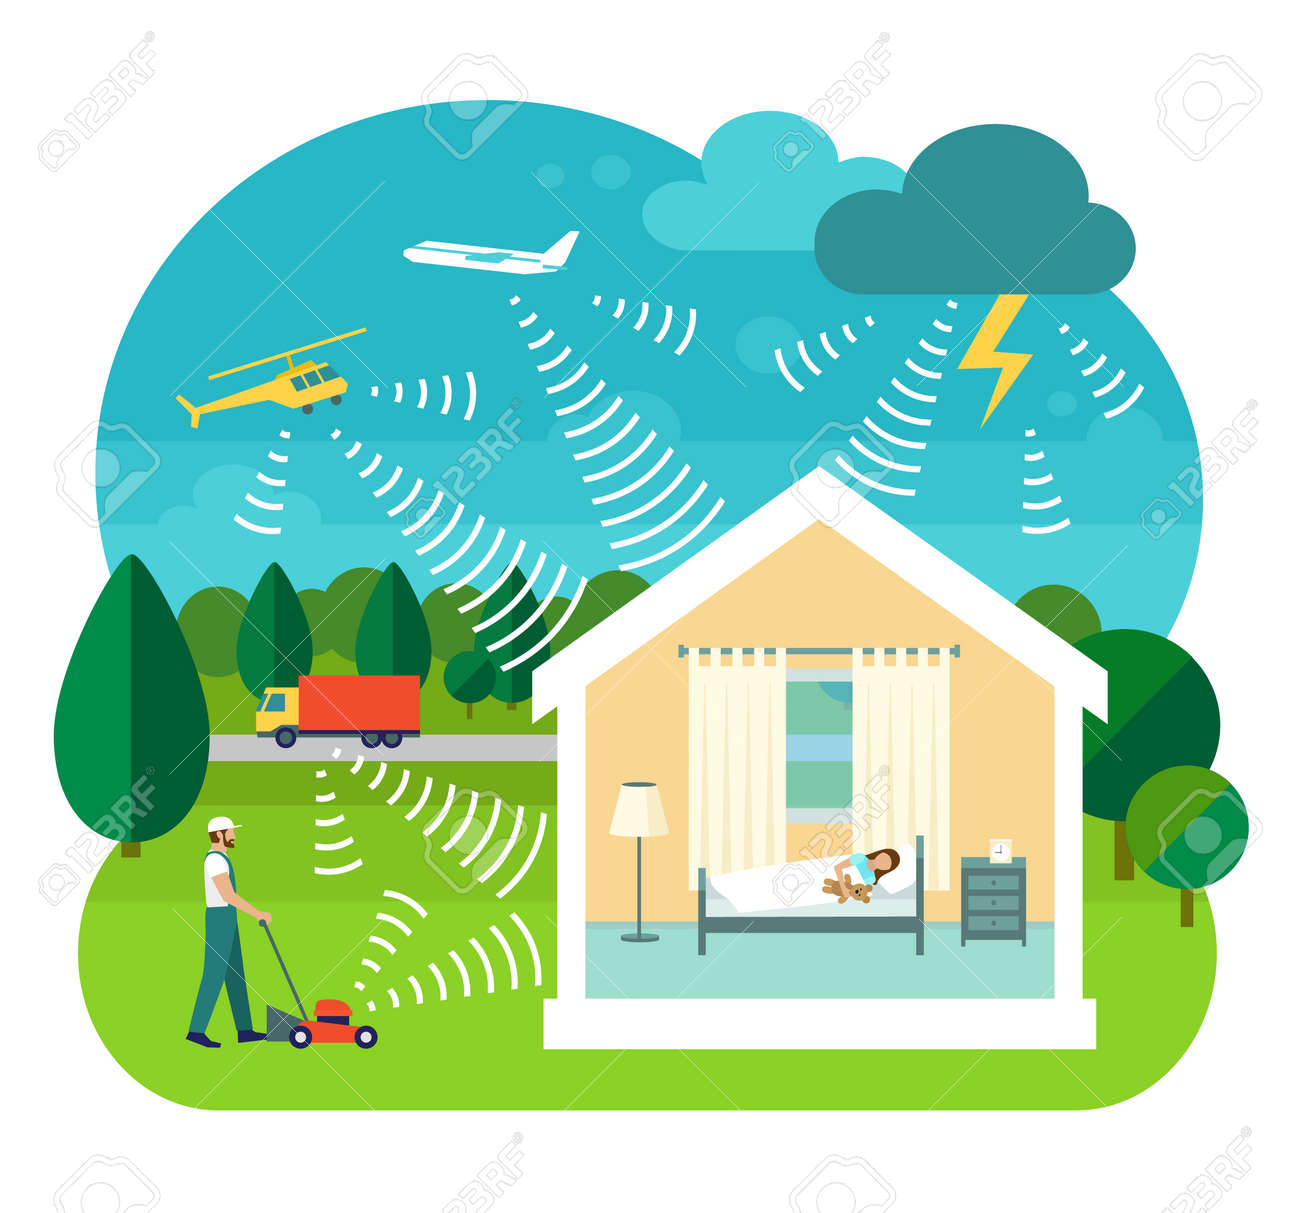 Flat style vector illustration of soundproofing house. Lawnmower, truck, helicopter, airplane and thunderstorms make noise. Girl sleeps in silence inside house. - 64260239